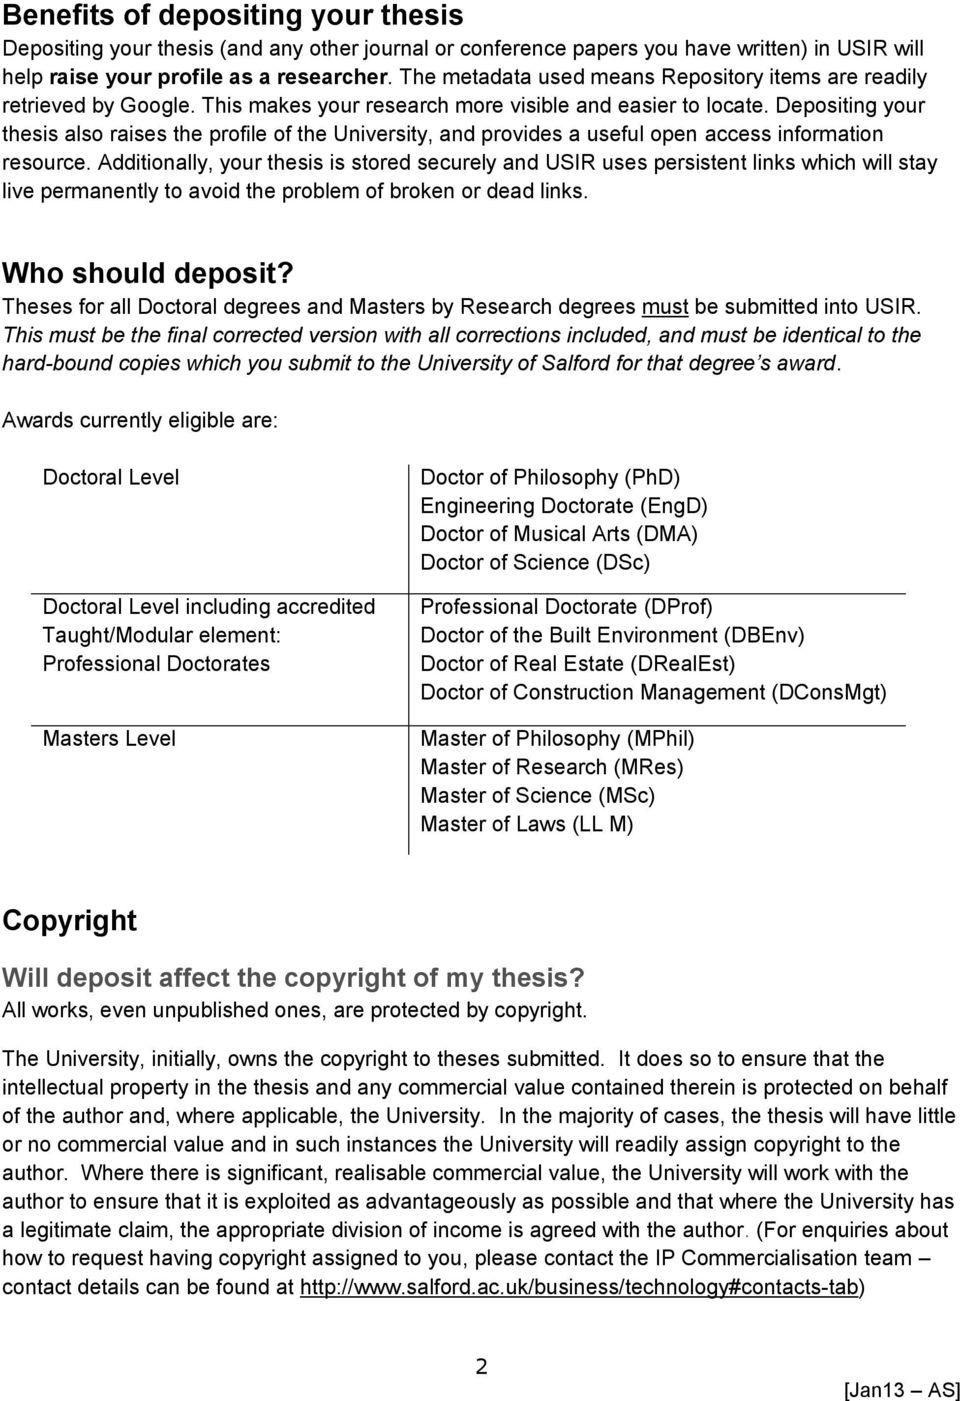 Depositing your thesis also raises the profile of the University, and provides a useful open access information resource.